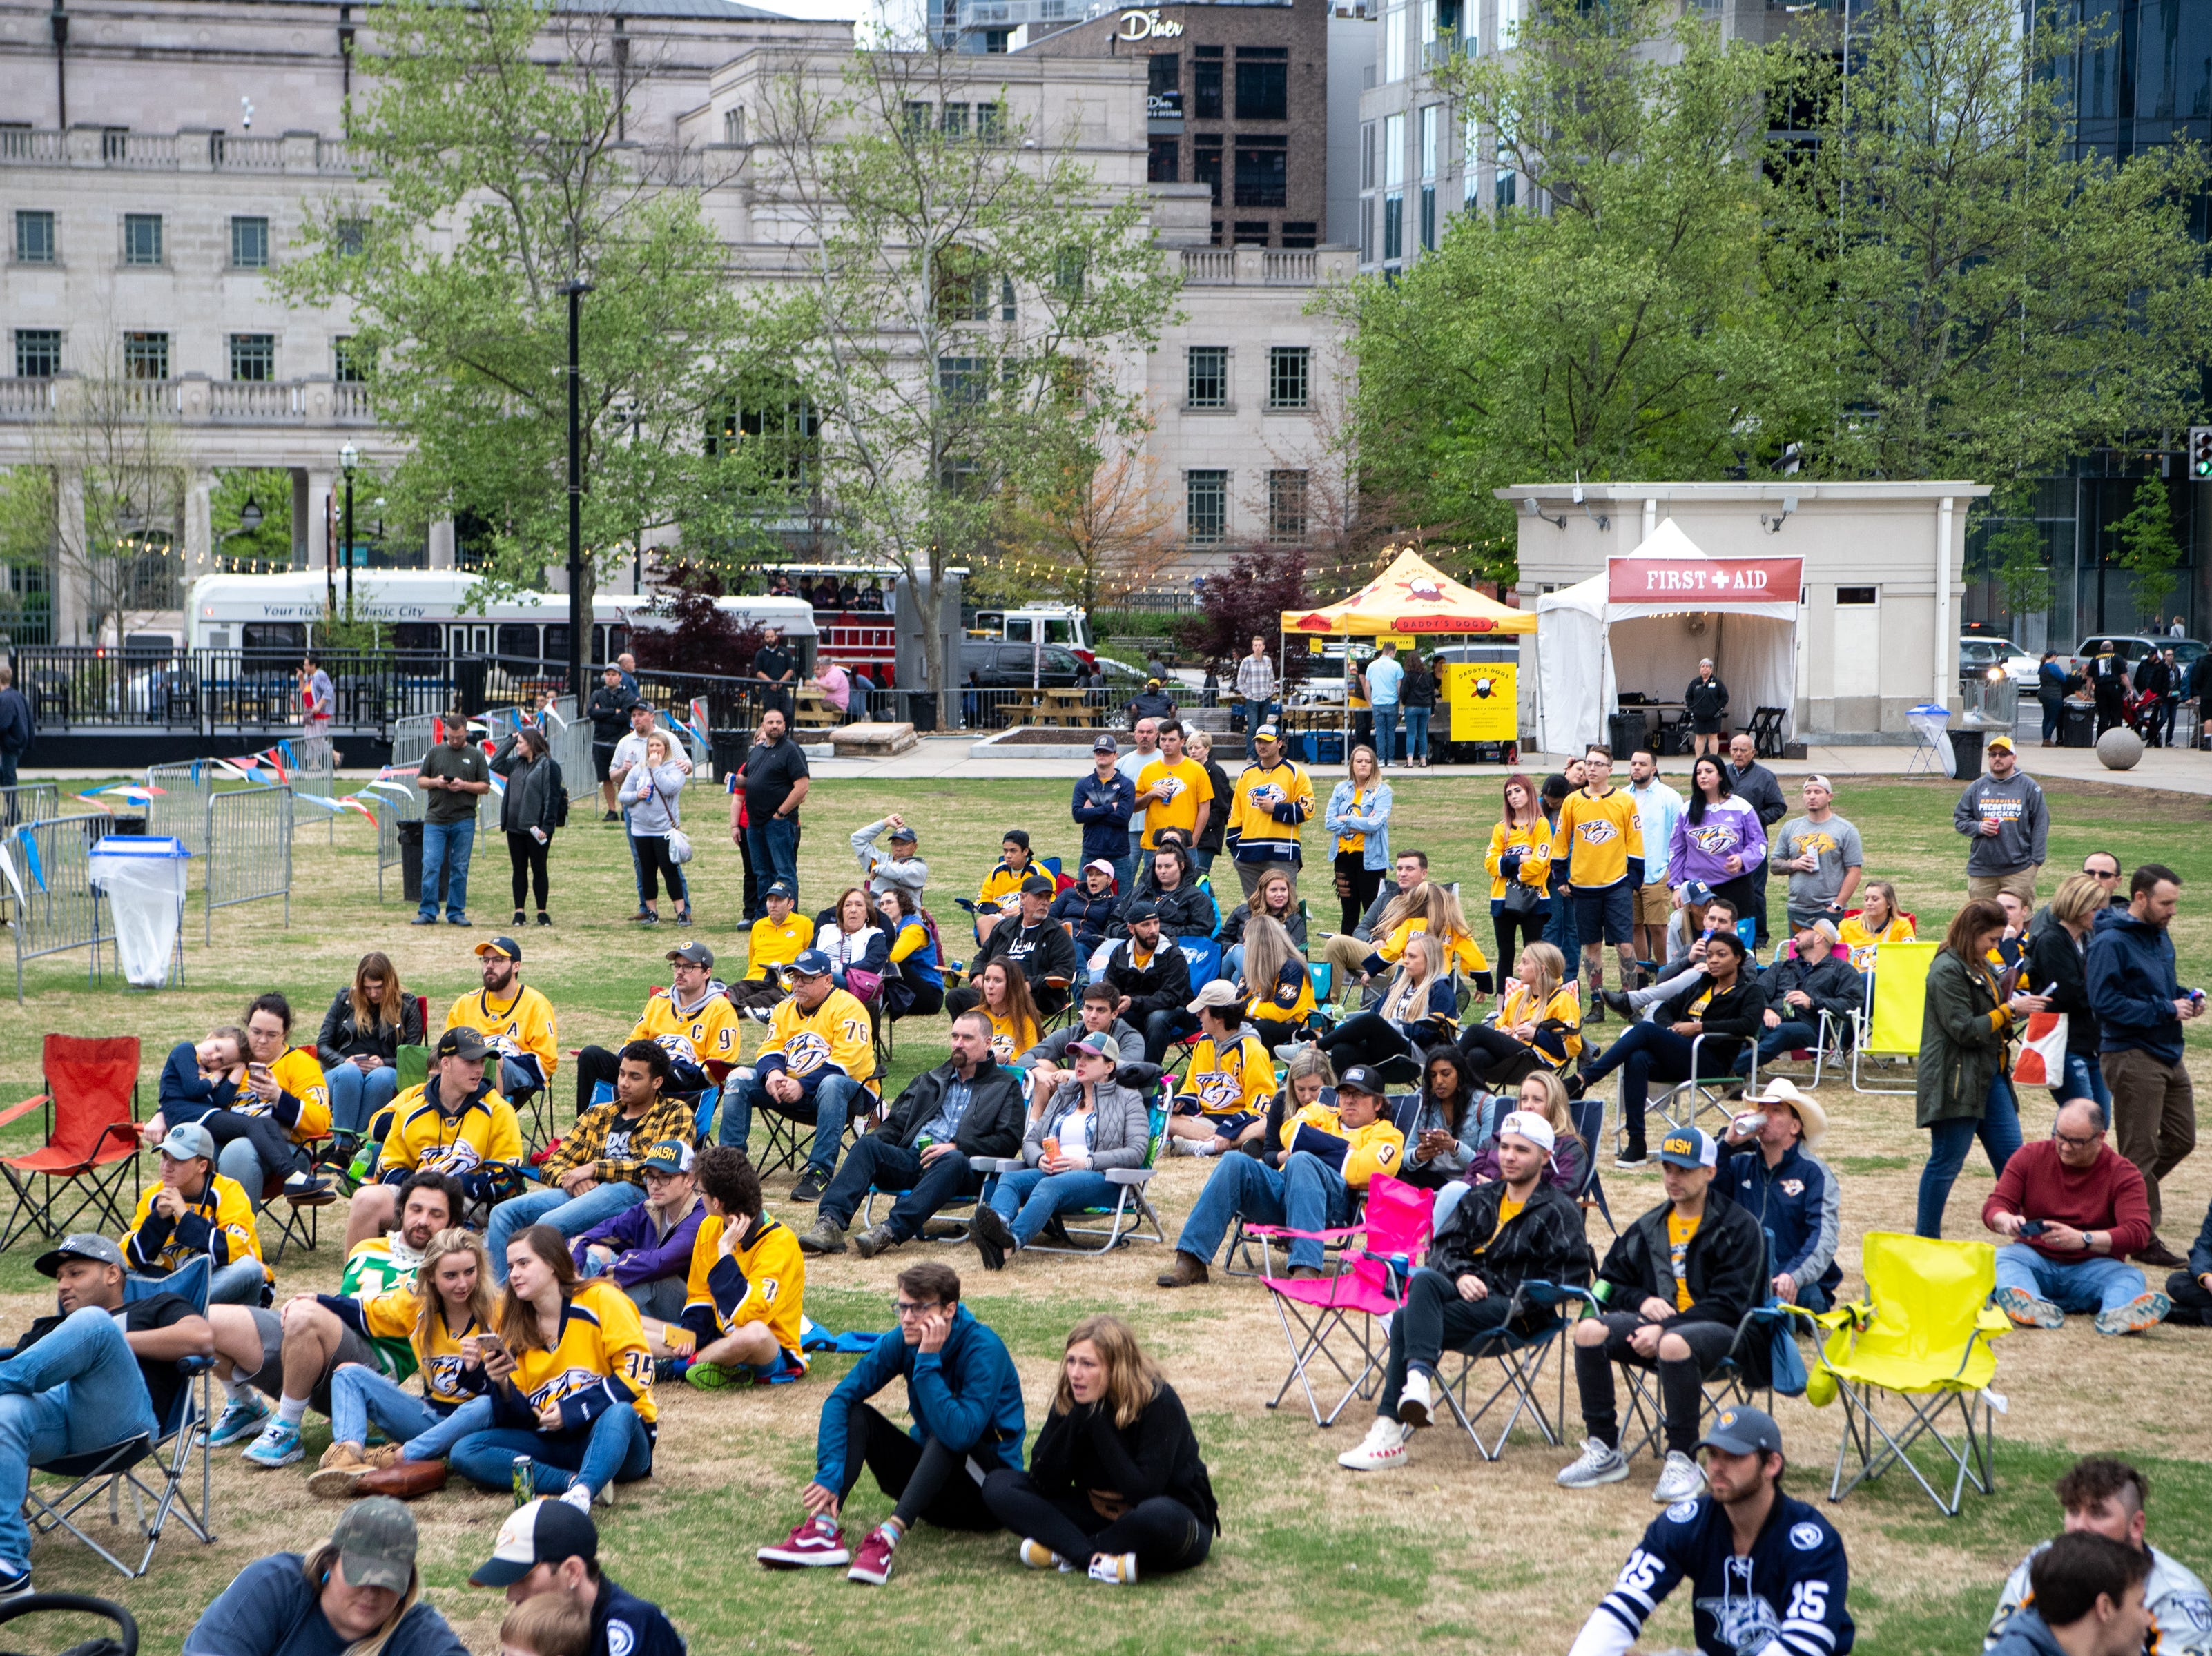 Fans watch the first period of the Nashville Predators game against the Dallas Stars at Preds Party in the Park at Walk of Fame Park Saturday, April 13, 2019, in Nashville, Tenn.